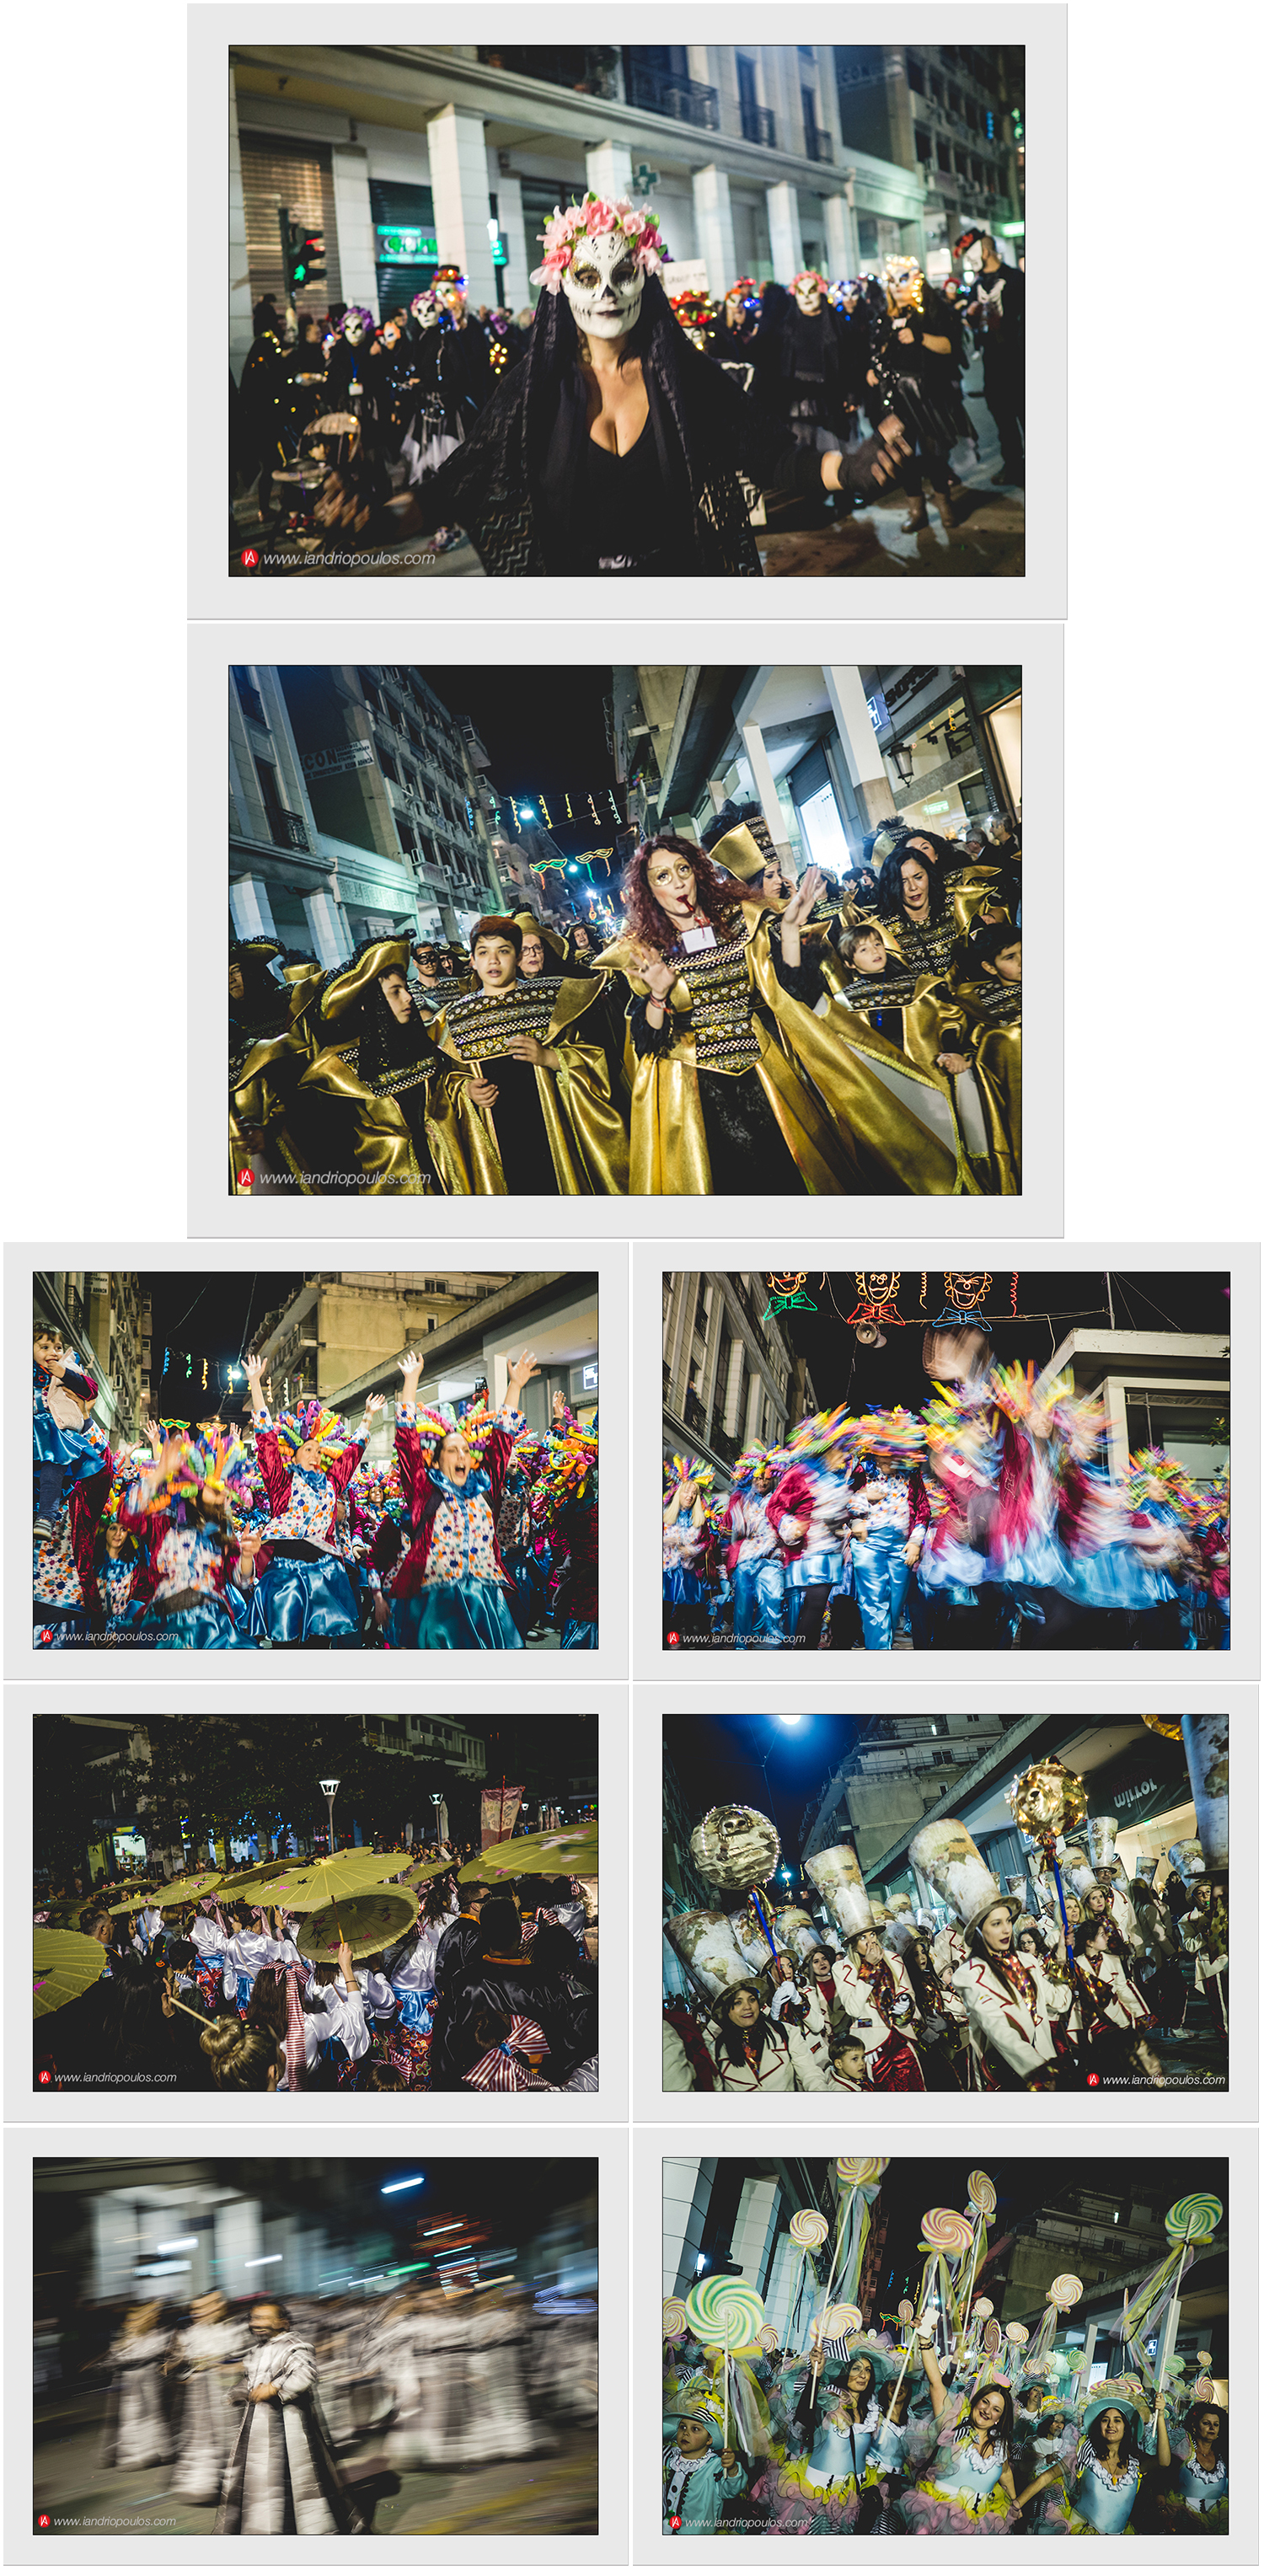 IOANNIS ANDRIOPOULOS PHOTOGRAPHY PATRAS CARNIVAL 2018 4